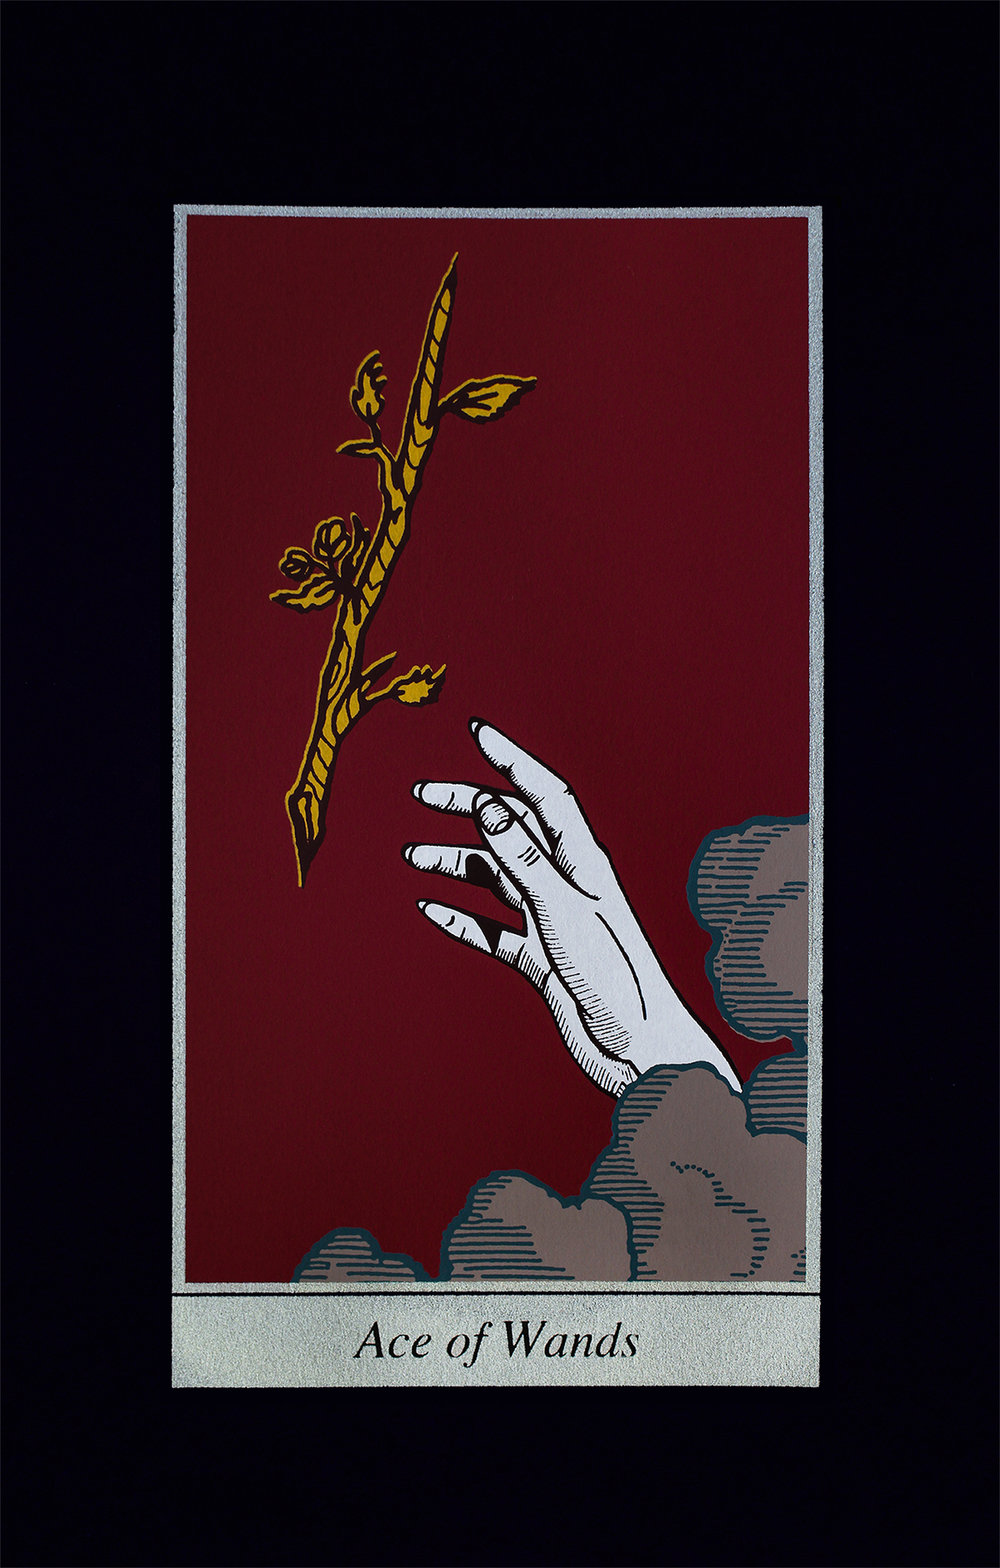 Ace of Wands, 2018, screenprint on black Strathmore paper, 8x12""